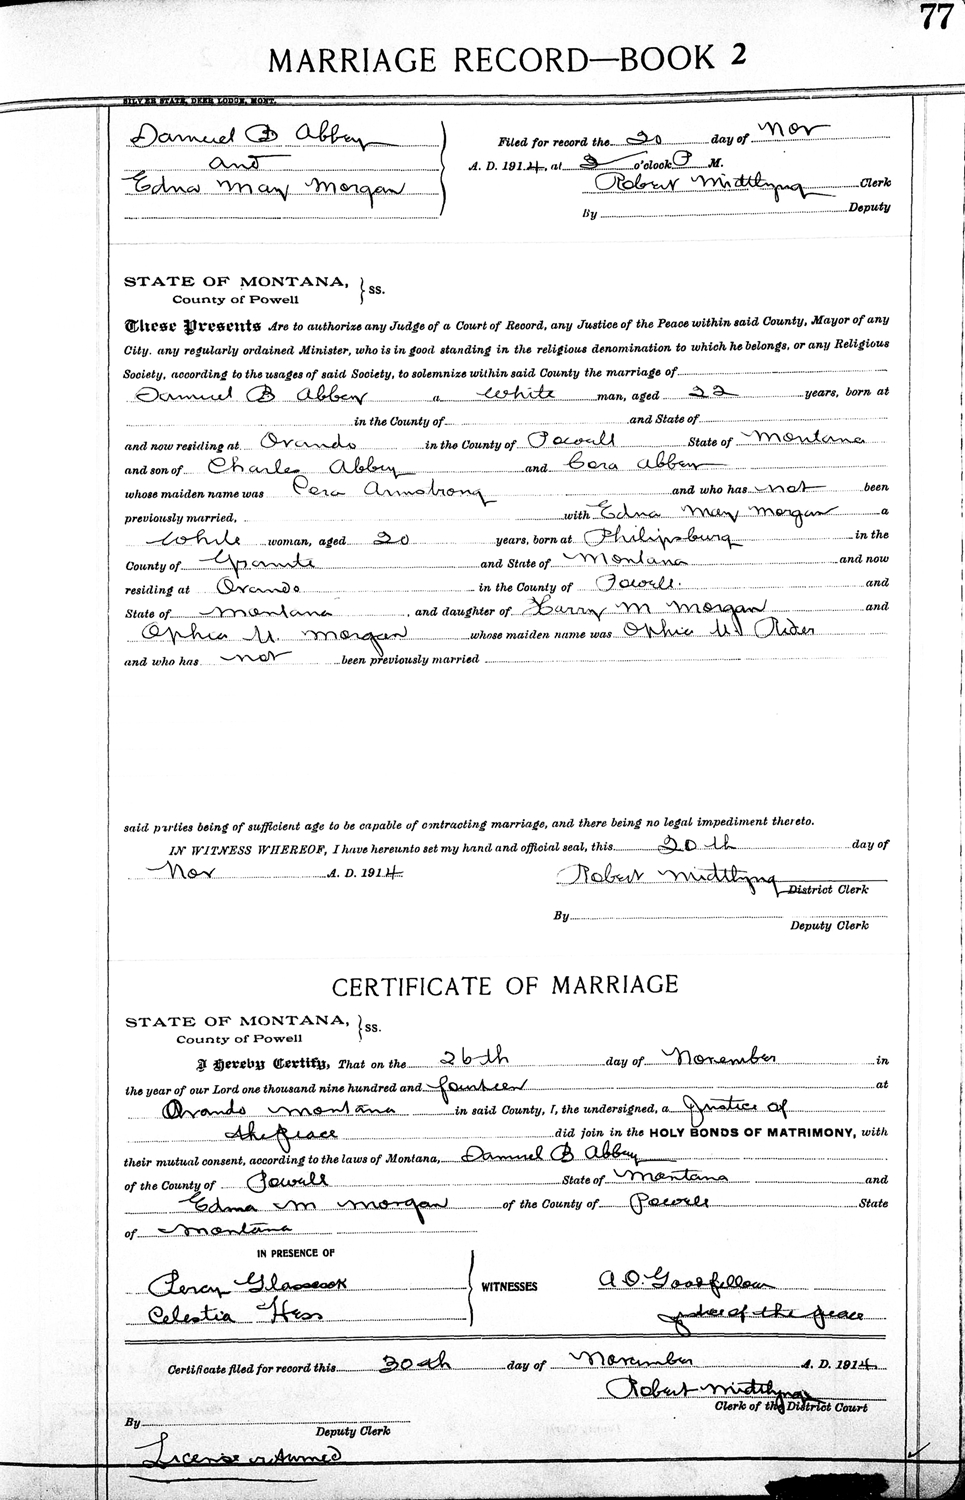 Samuel benton abbey the wwi draft registration report dated june 5 1917 shows sam b abbey age 24 born august 16 1892 in baraboo wi is a miner who is employed by 1betcityfo Gallery